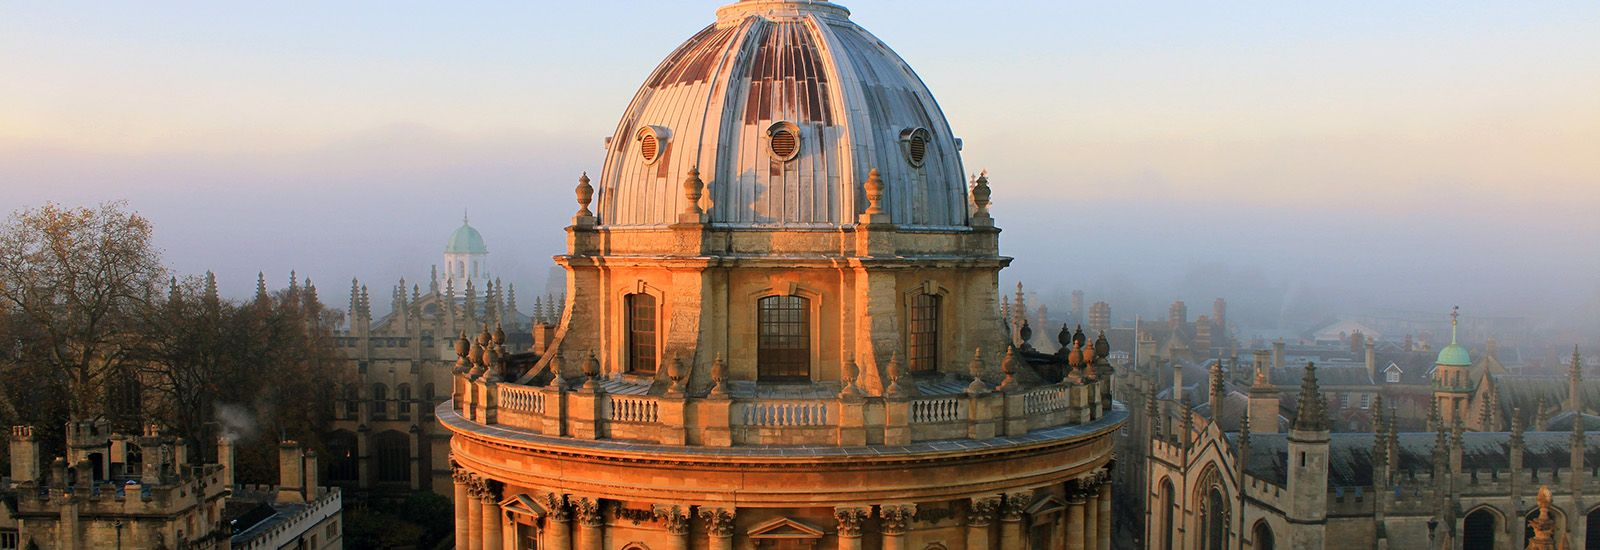 The dome of the Radcliffe Camera and spires of Oxford on a misty morning